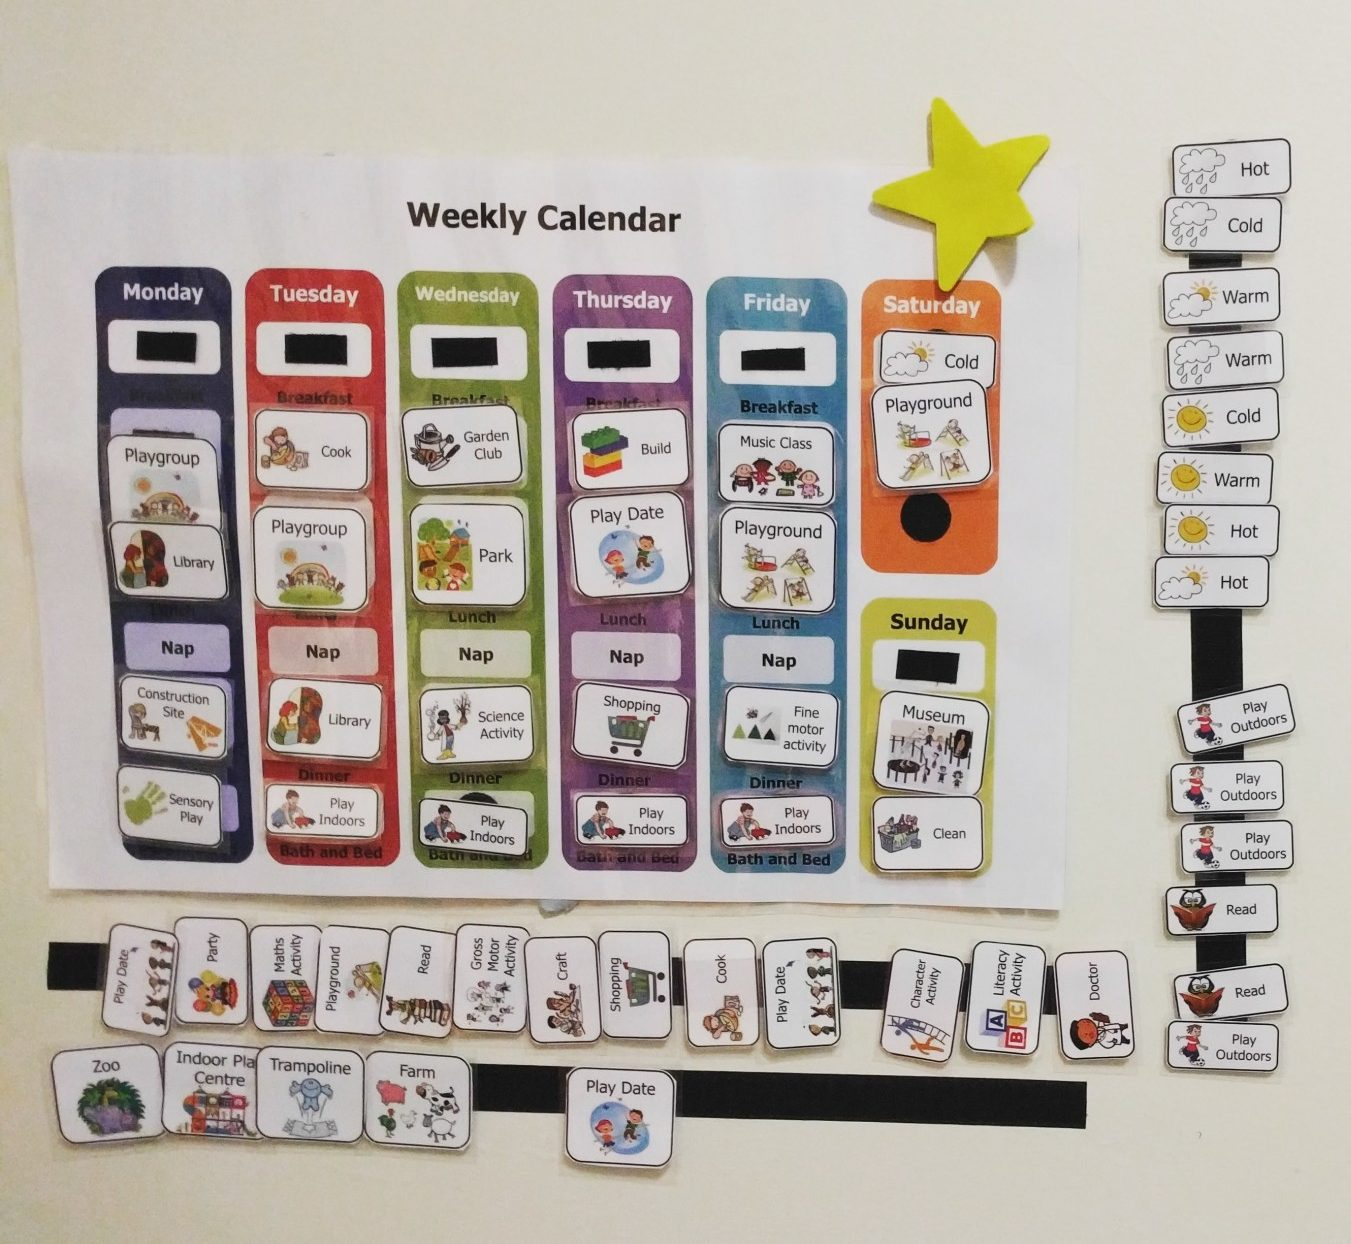 Weekly Activity Calendar for Preschoolers